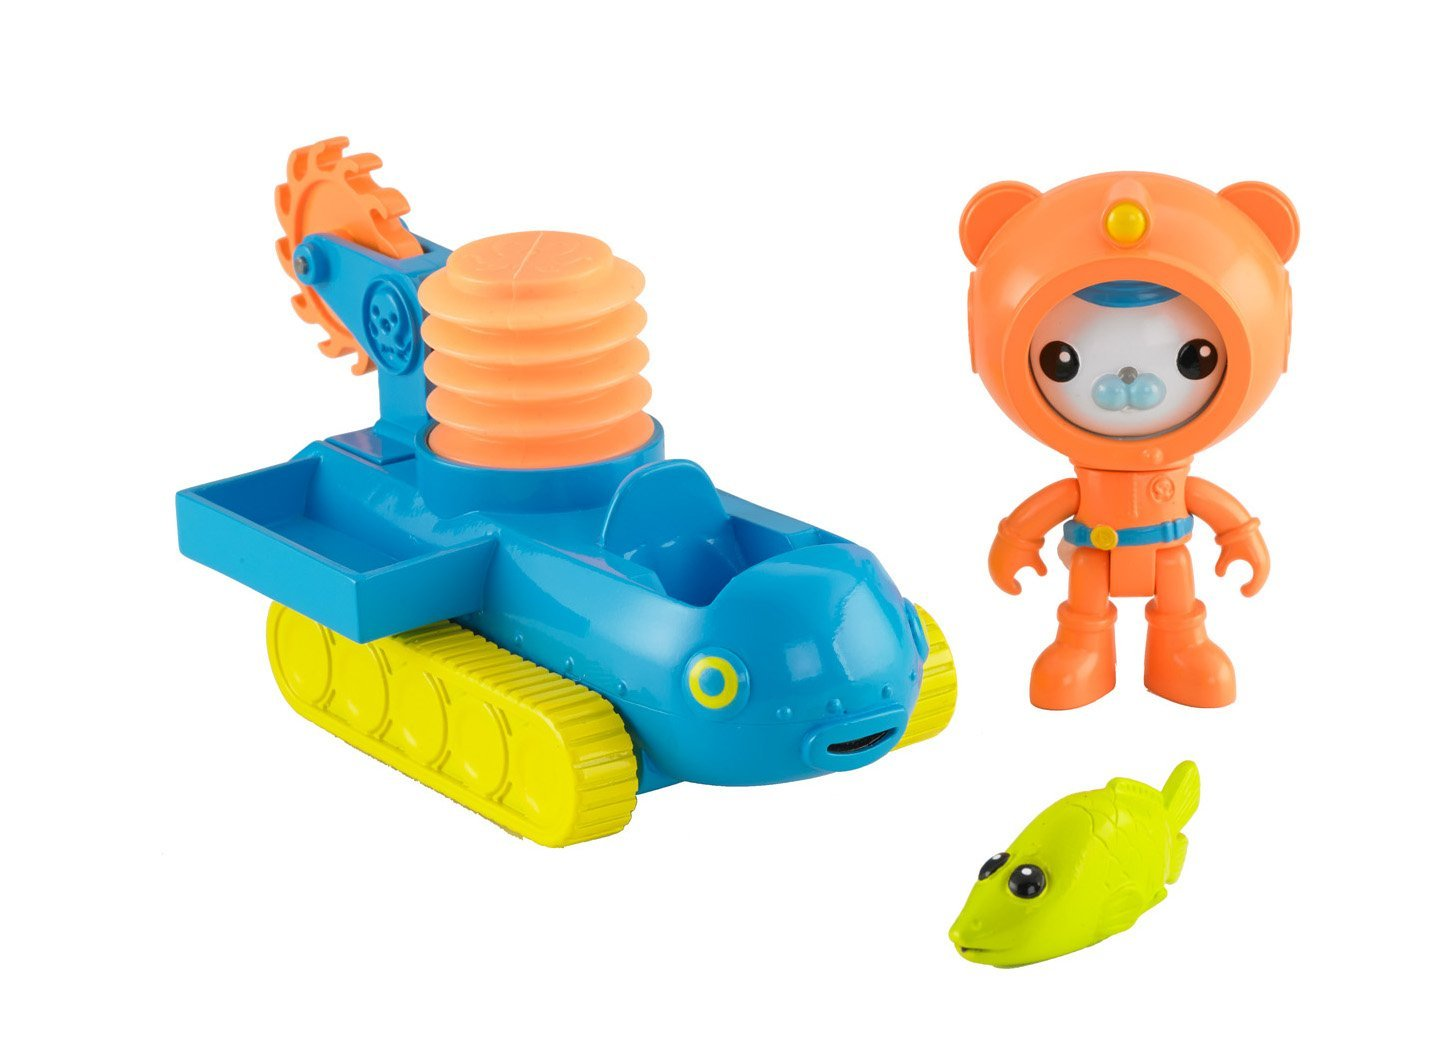 619k6 pxJbL. SL1438  Amazon: Fisher Price Barnacles Deep Sea Octo Buggy Only $5.79 (Reg. $12.99)